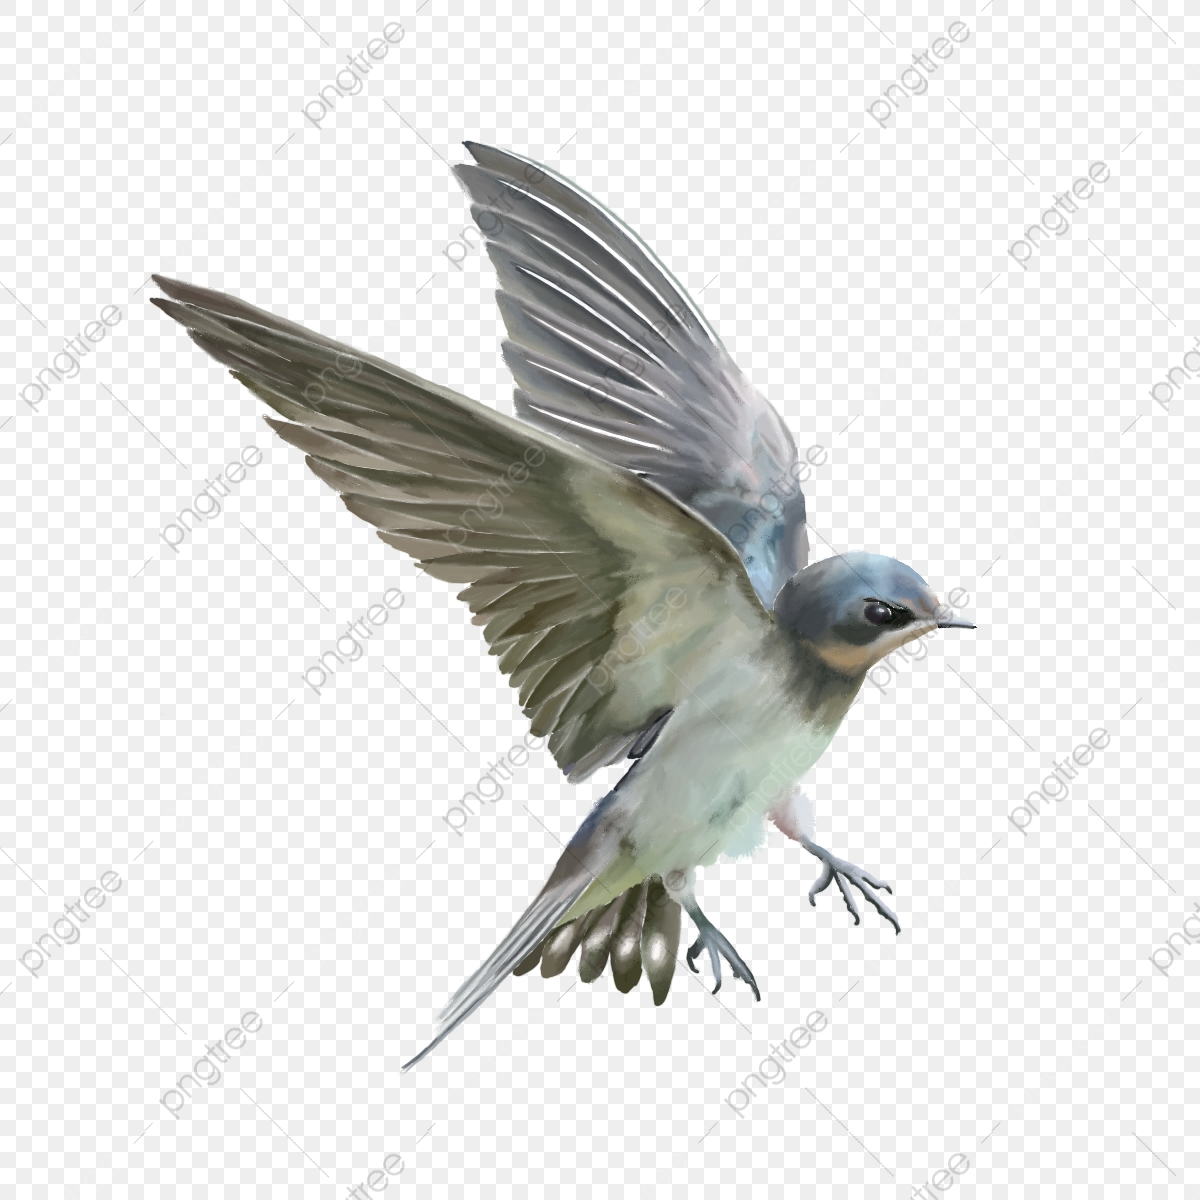 Cute Vivid Flying Bird Cute Bird Flying Bird Bird Png Transparent Clipart Image And Psd File For Free Download